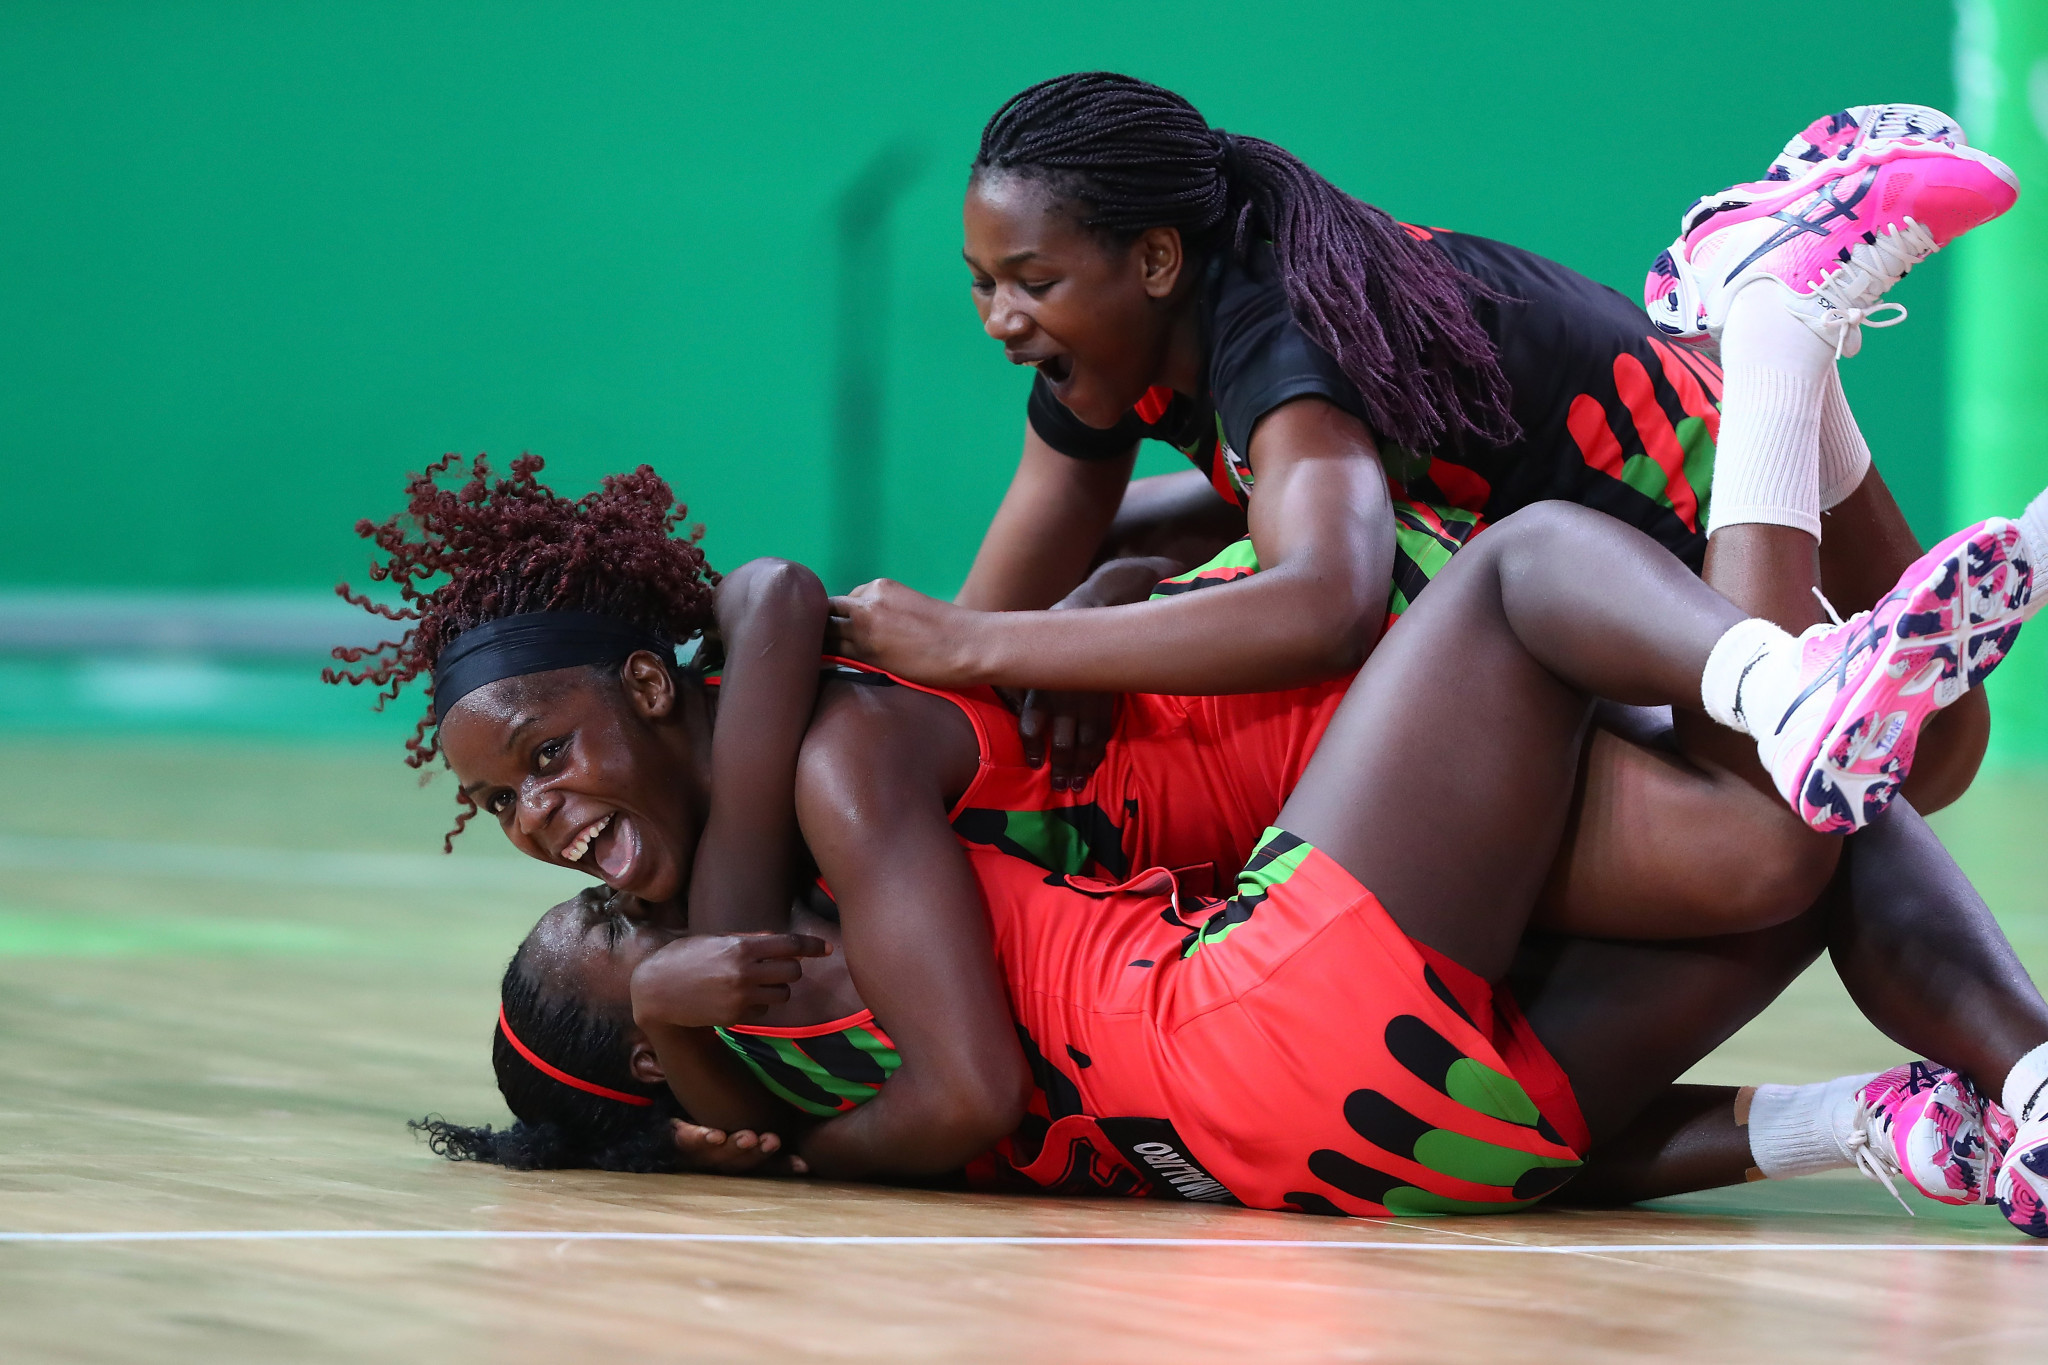 Malawi's netball team shocked New Zealand at Gold Coast 2018 ©Getty Images